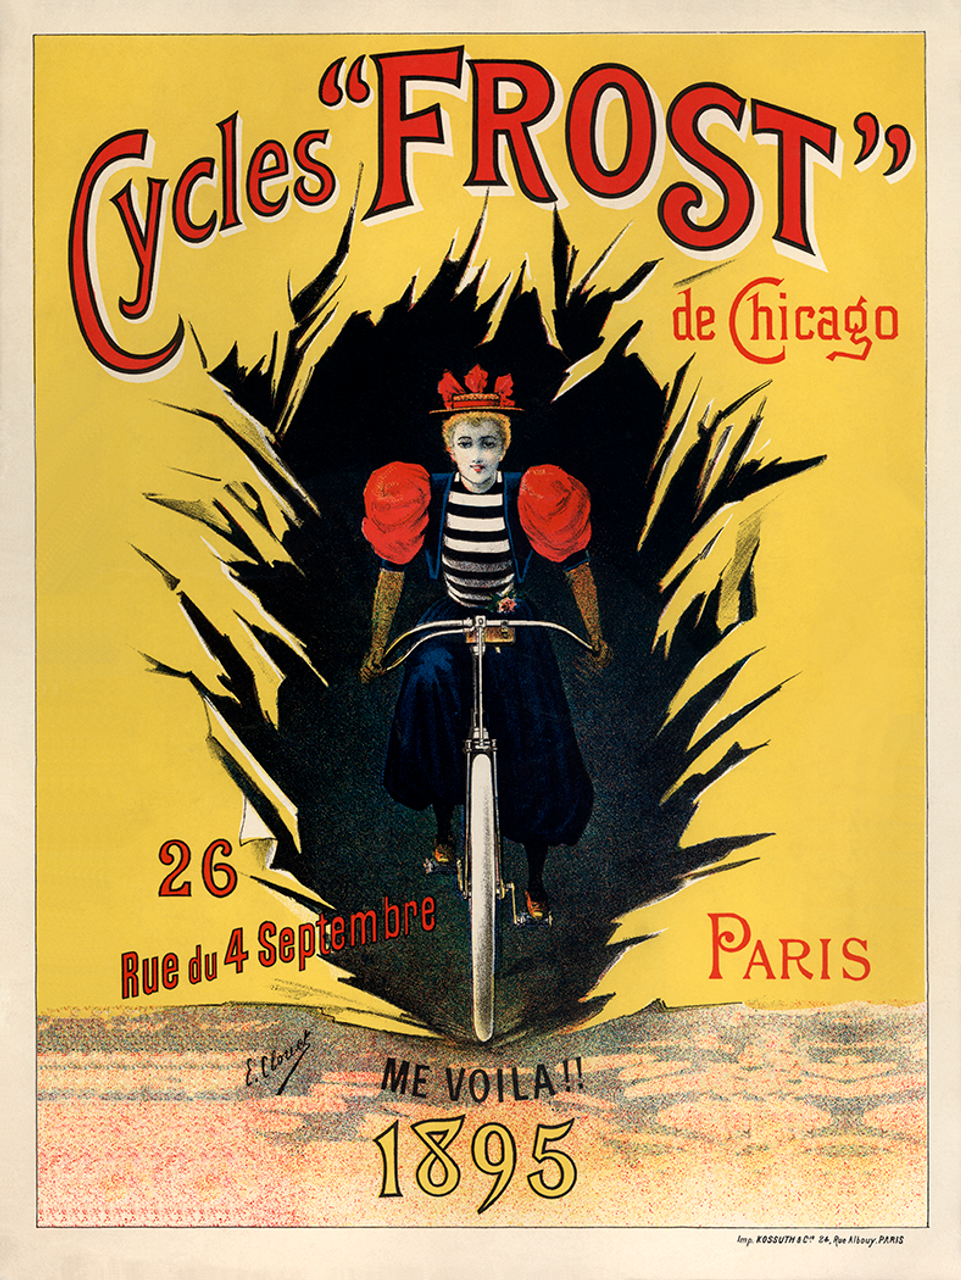 Frost De Chicago Bicycle Poster